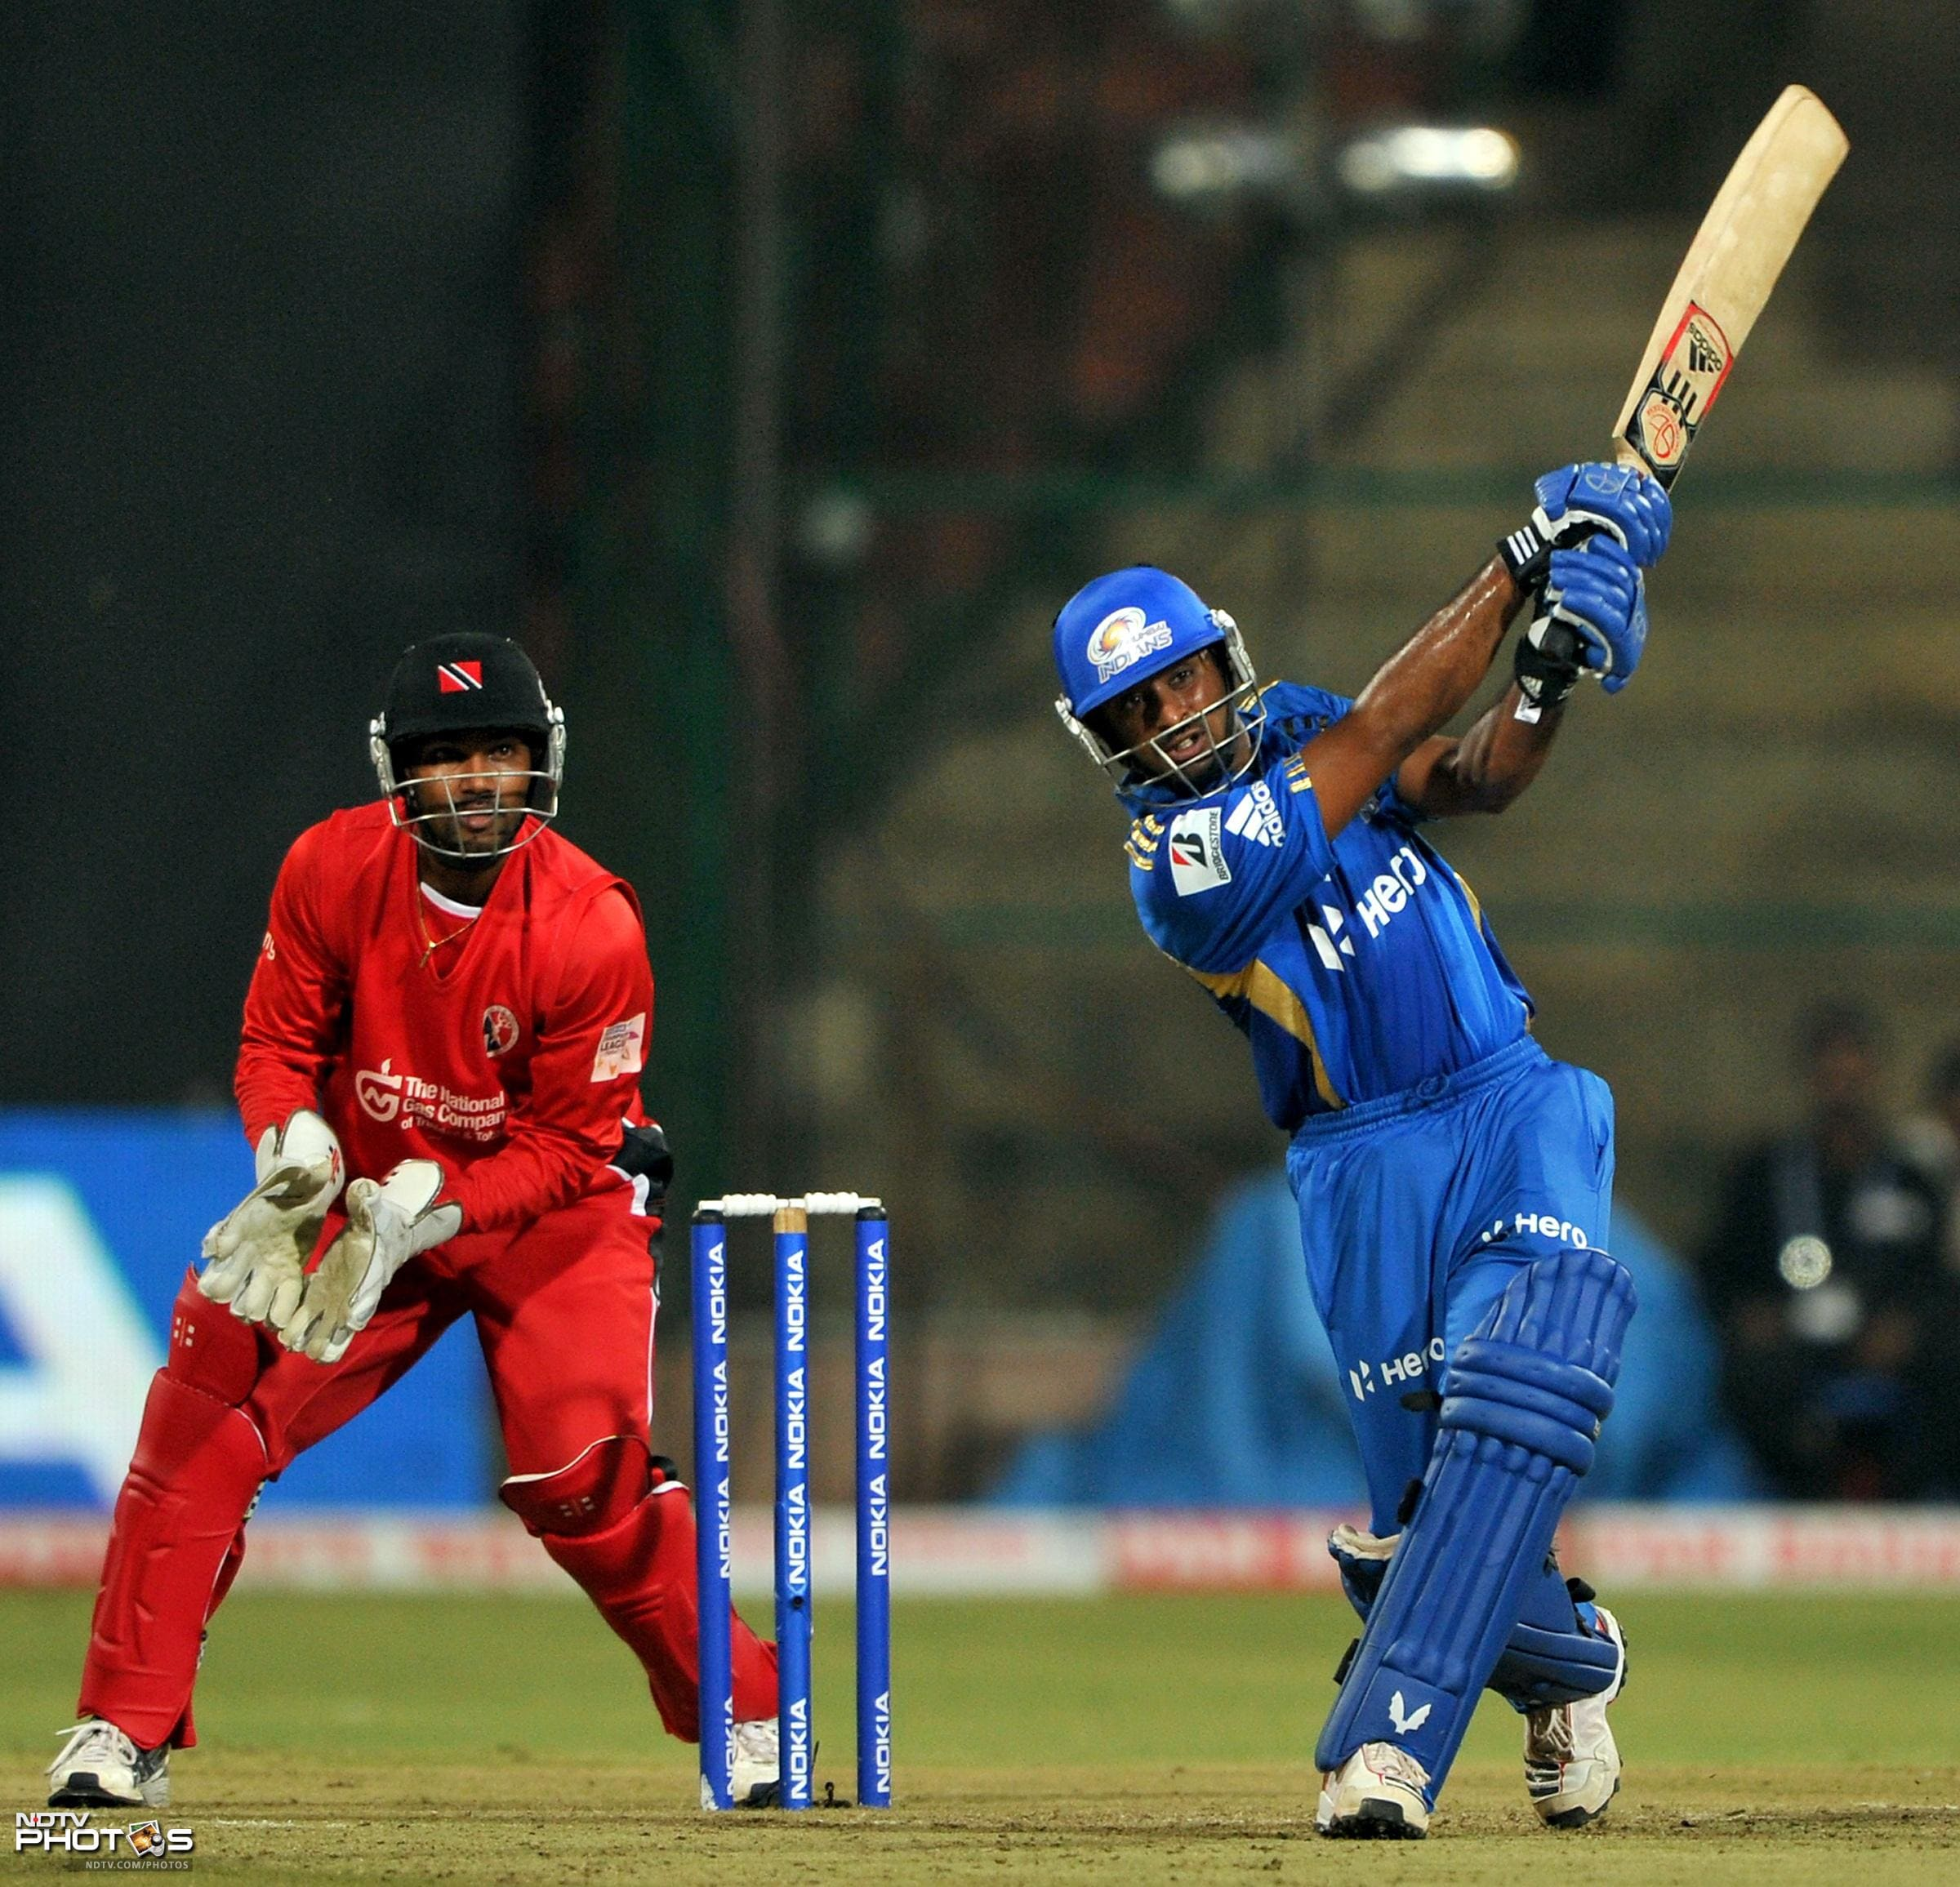 Ambati Rayudu hits a boundary while wicketkeeper Denesh Ramdin looks on during the Champions League Twenty20 League Group A match between Mumbai Indians and Trinidad and Tobago at the M. Chinnaswamy Stadium in Bangalore. (AFP Photo)